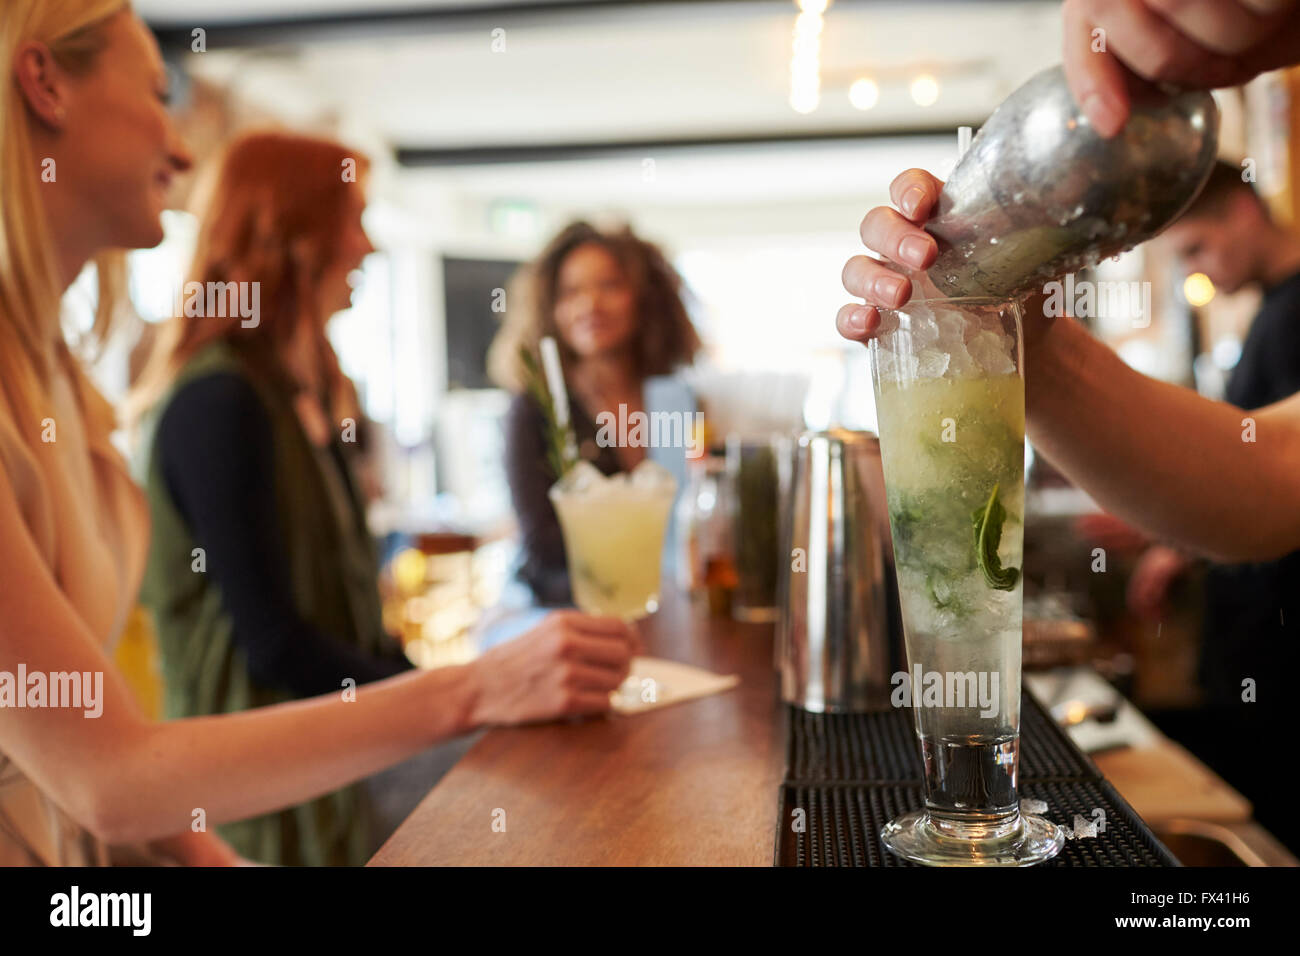 Barman Pouring Mojito Cocktail With Customers In Background - Stock Image